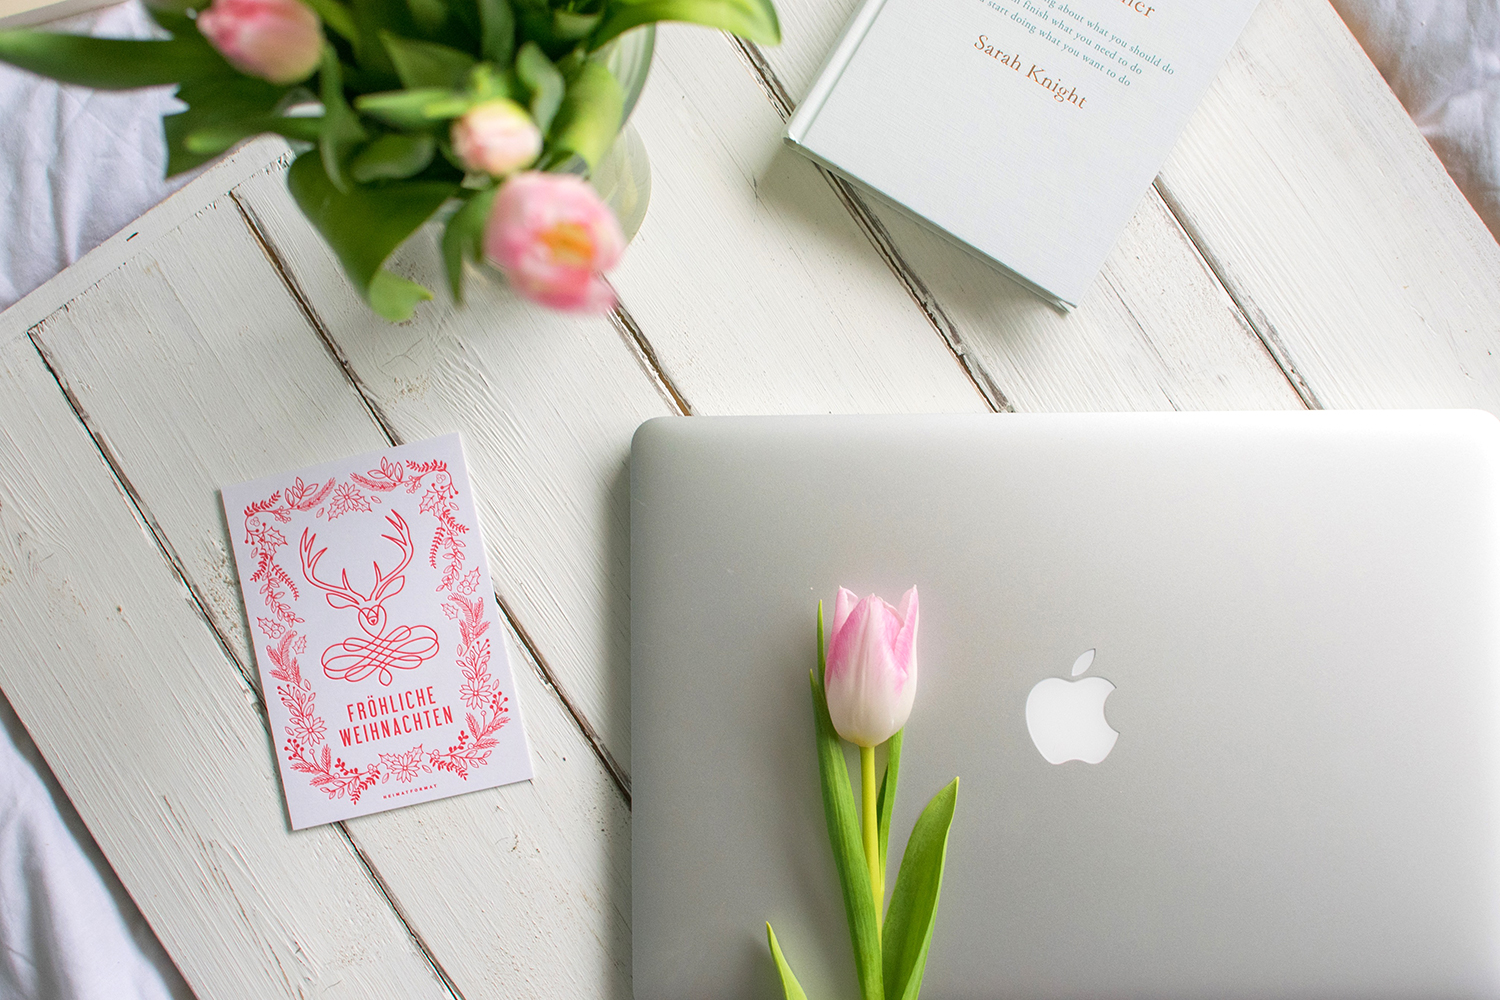 Just another 2016 recap - Flatlay on white wooden backdrop of pink tulips, icelandic designed card and get your shit together book by sarah knight, inspirational and goal-setting blog post